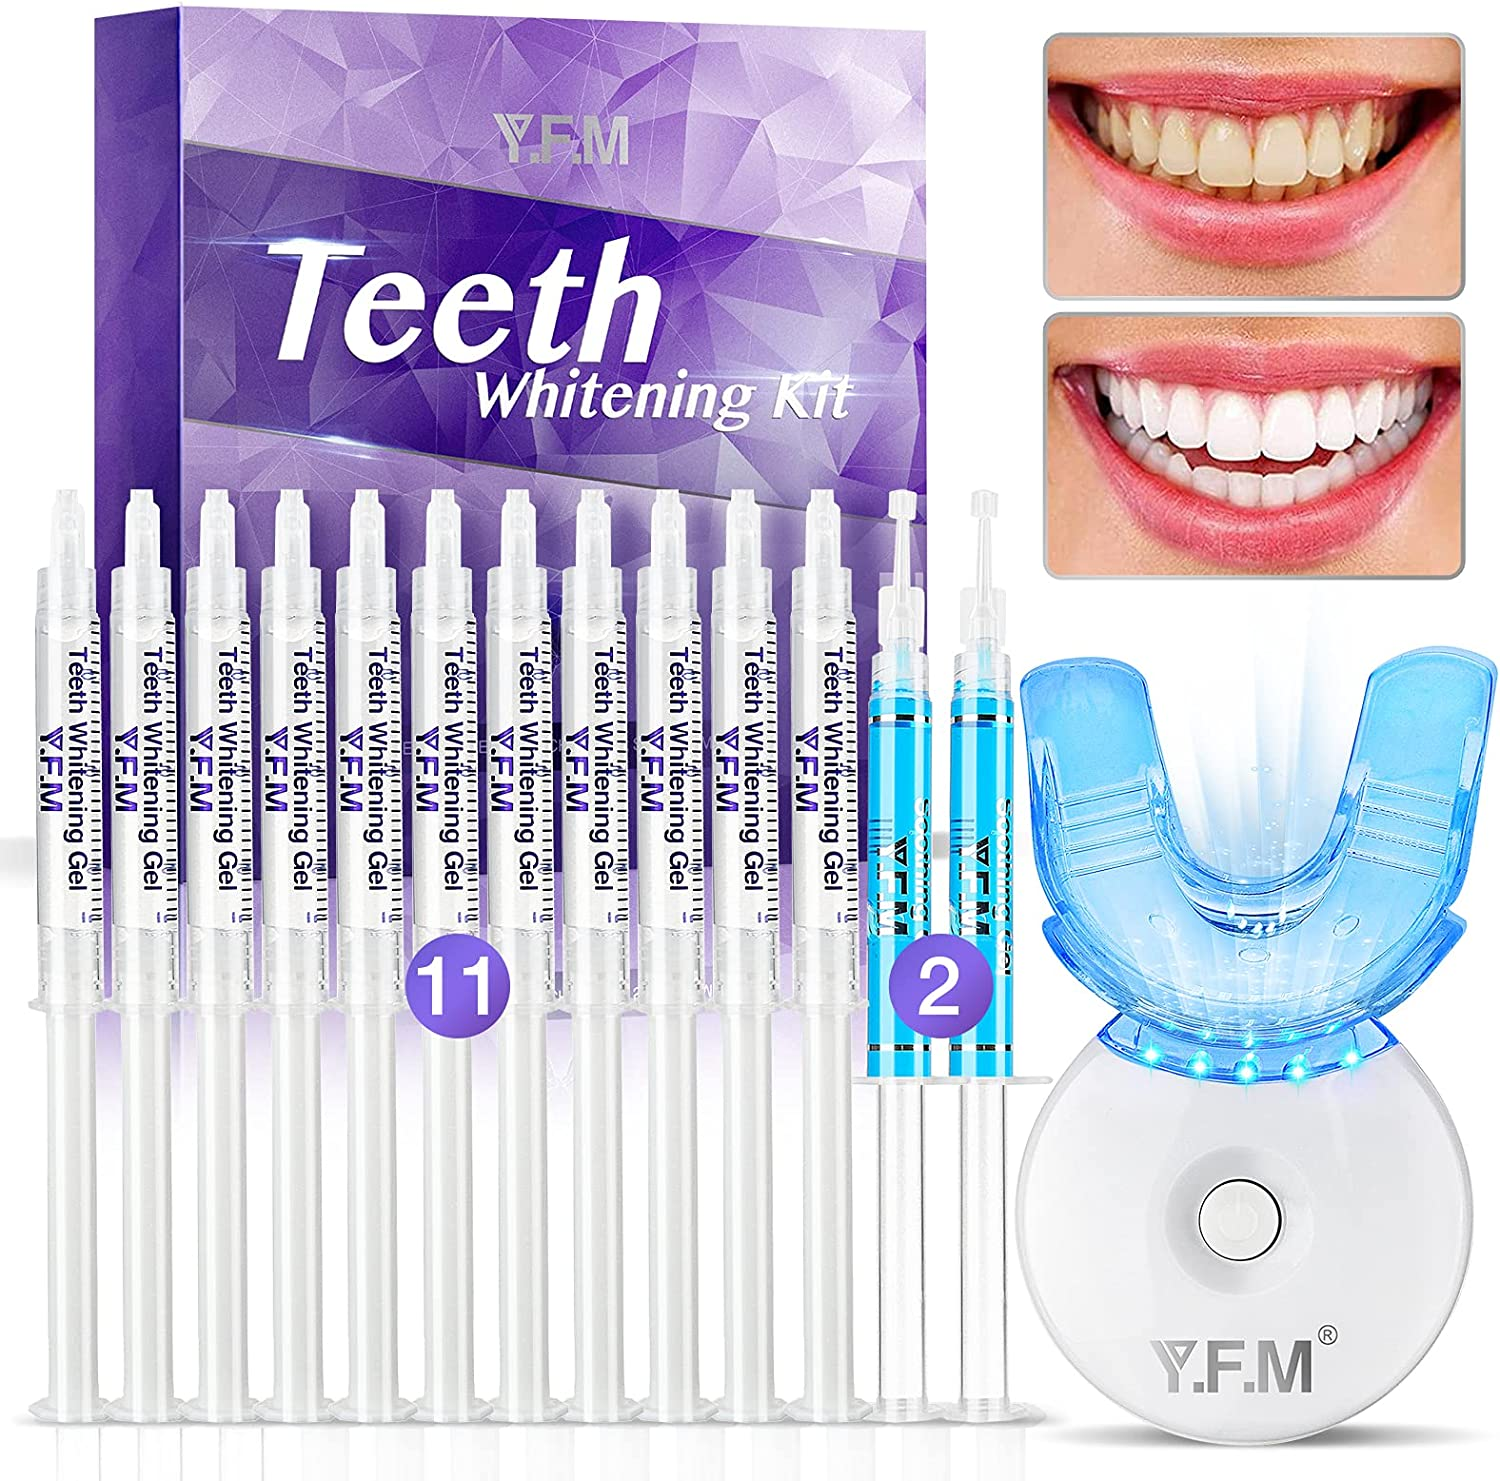 Teeth Whitening Kit, Y.F.M Professional Home Whitening Teeth Kit, 11pcs Teeth Whitening Gel, 2pcs Soothing Gel, 5X LED Light Tooth Whitener, 10 Min Non-Sensitive Fast Teeth Whitener: Health & Personal Care